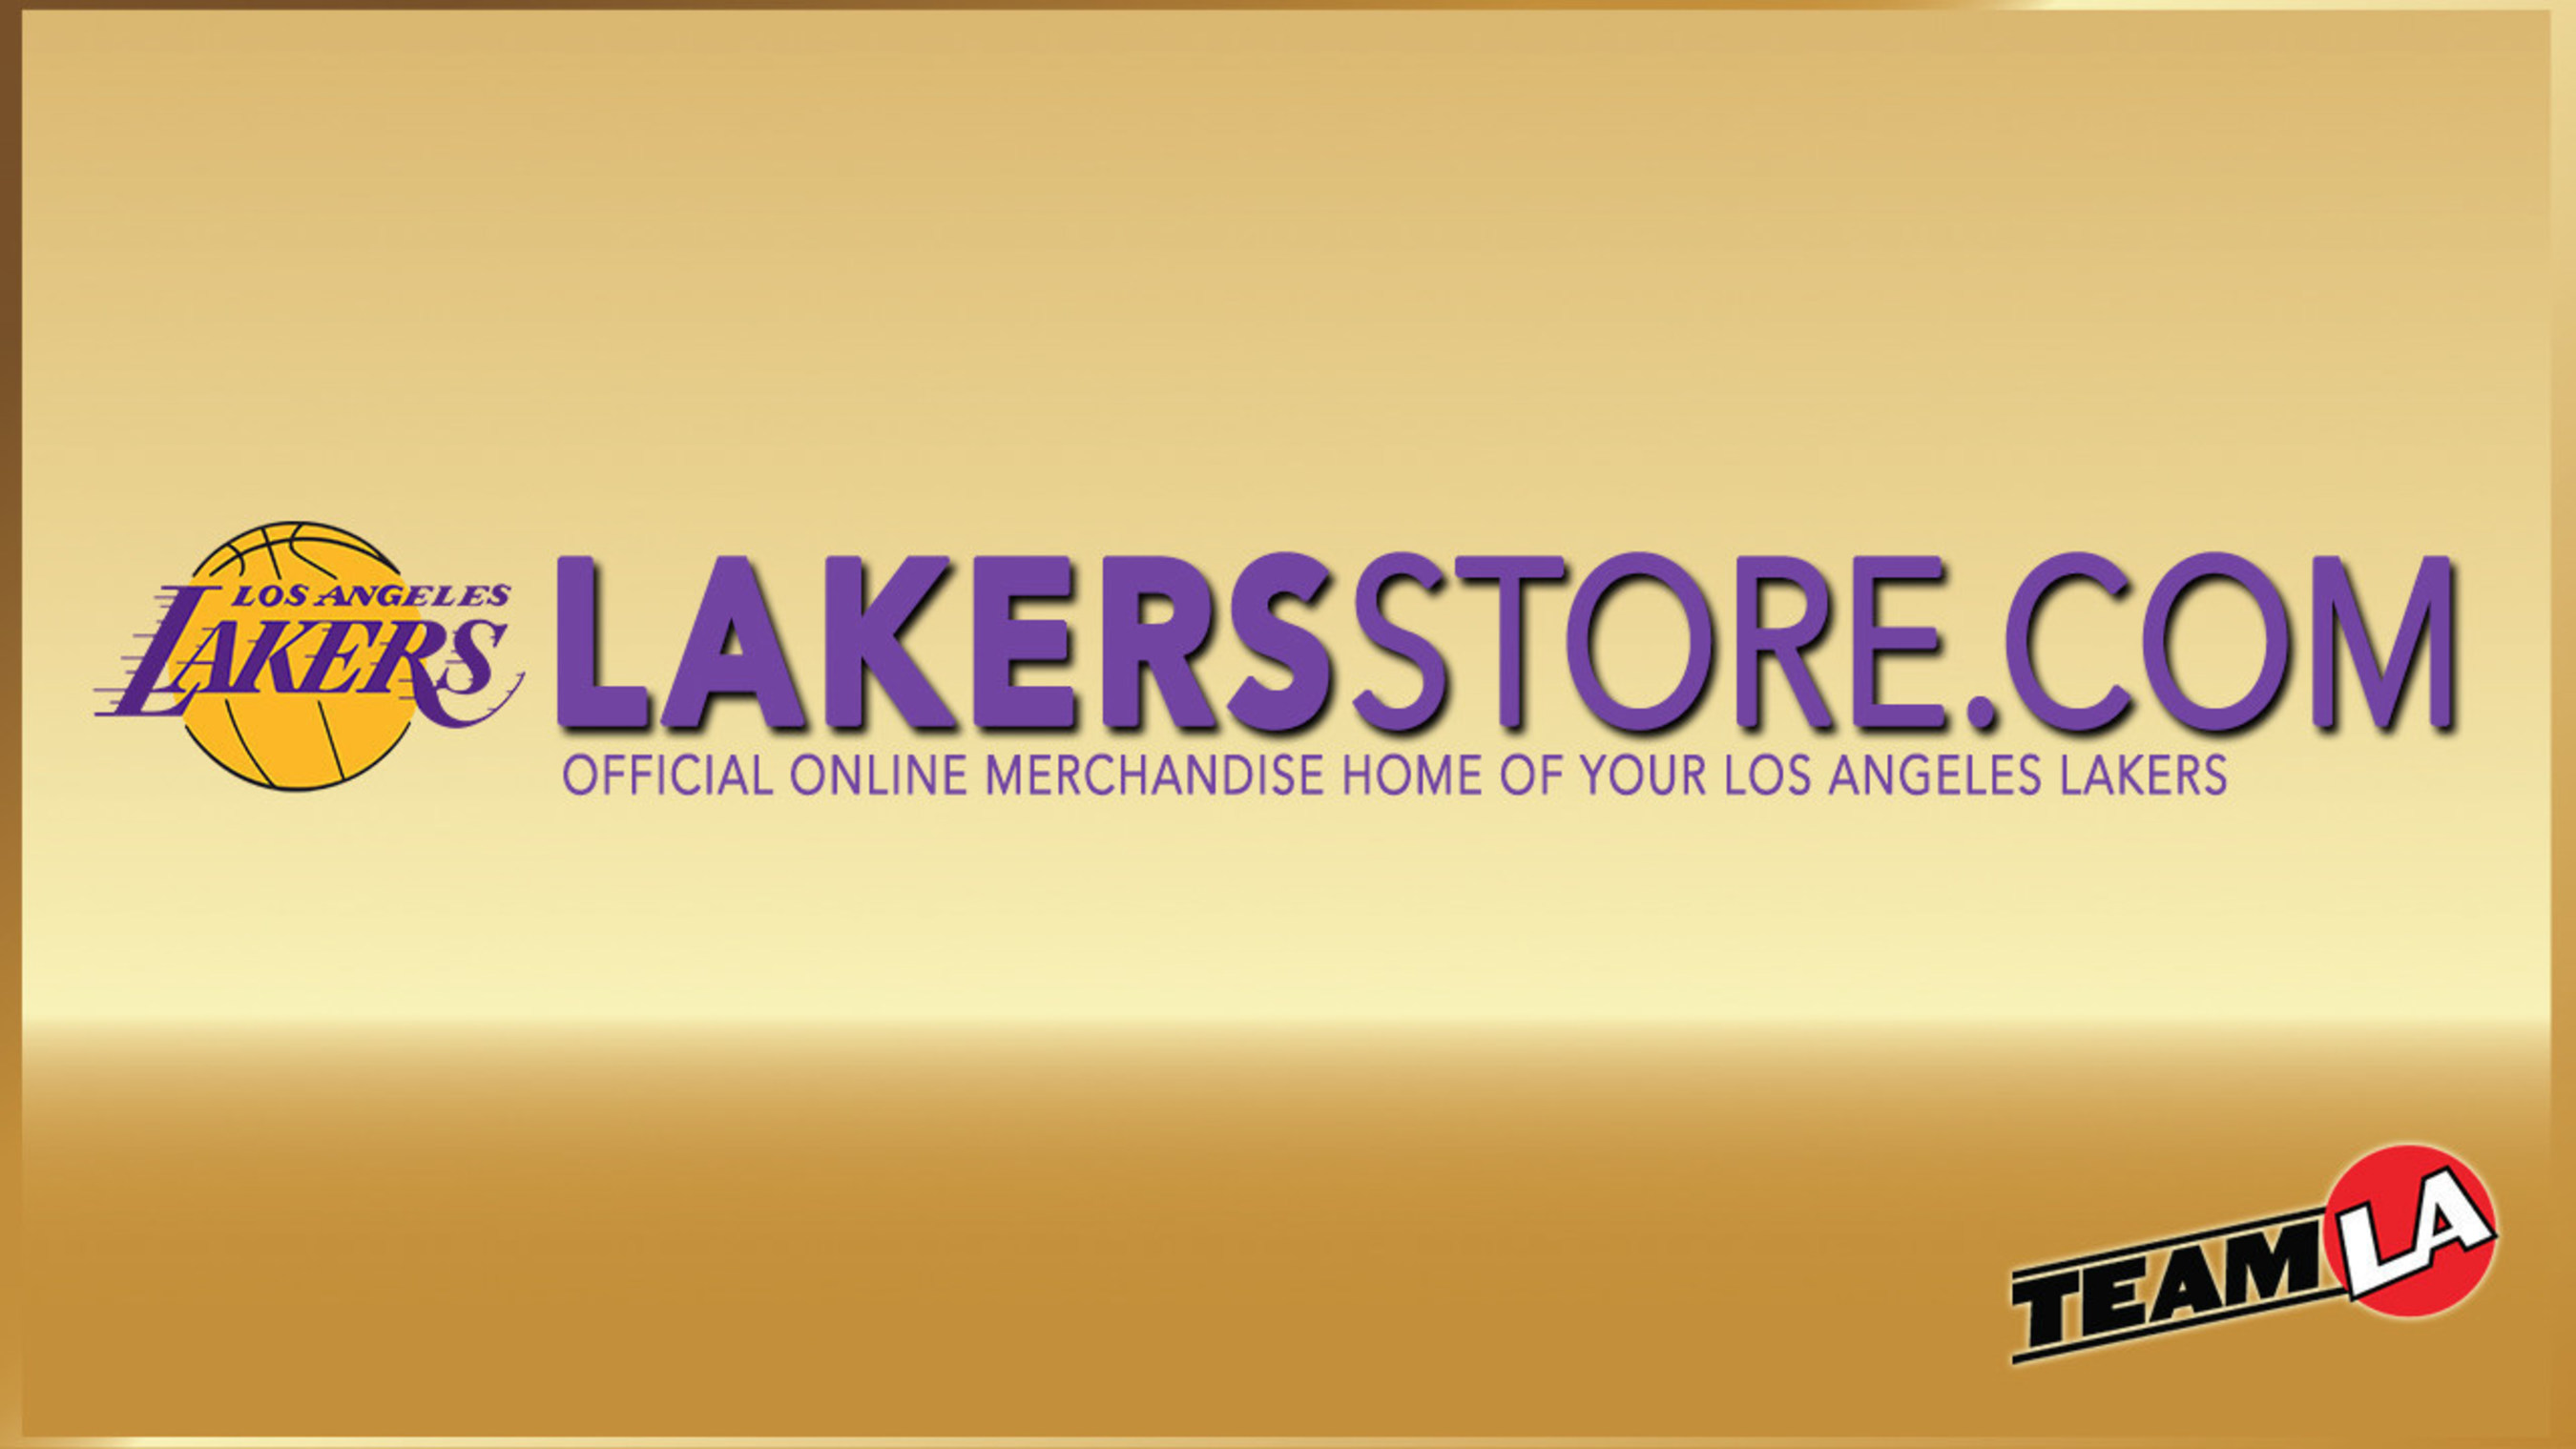 AEG Merchandise And Lakersstore.com Unveil The Official Kobe Bryant